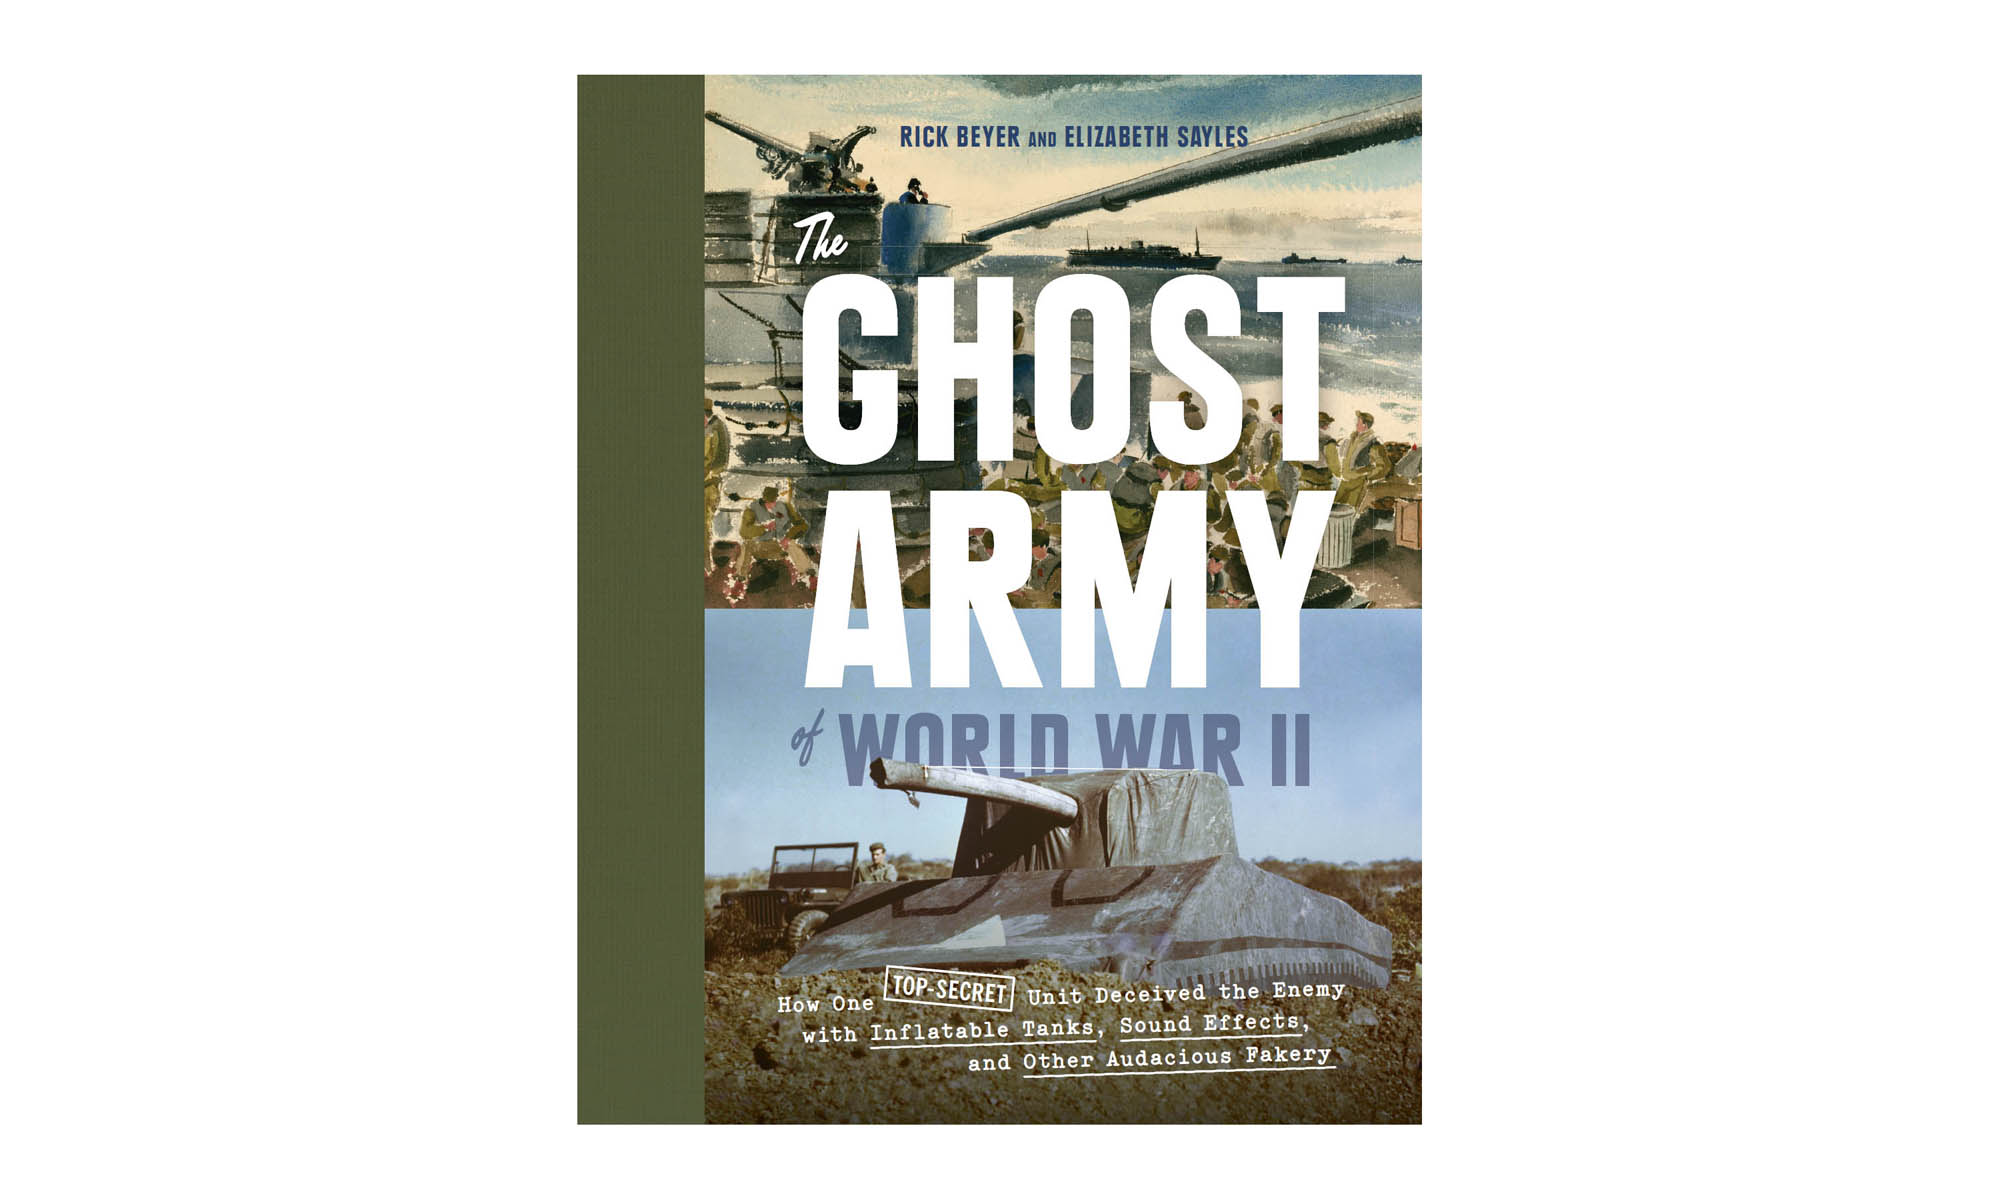 The Ghost Army of World War II, by Rick Beyer and Elizabeth Sayles